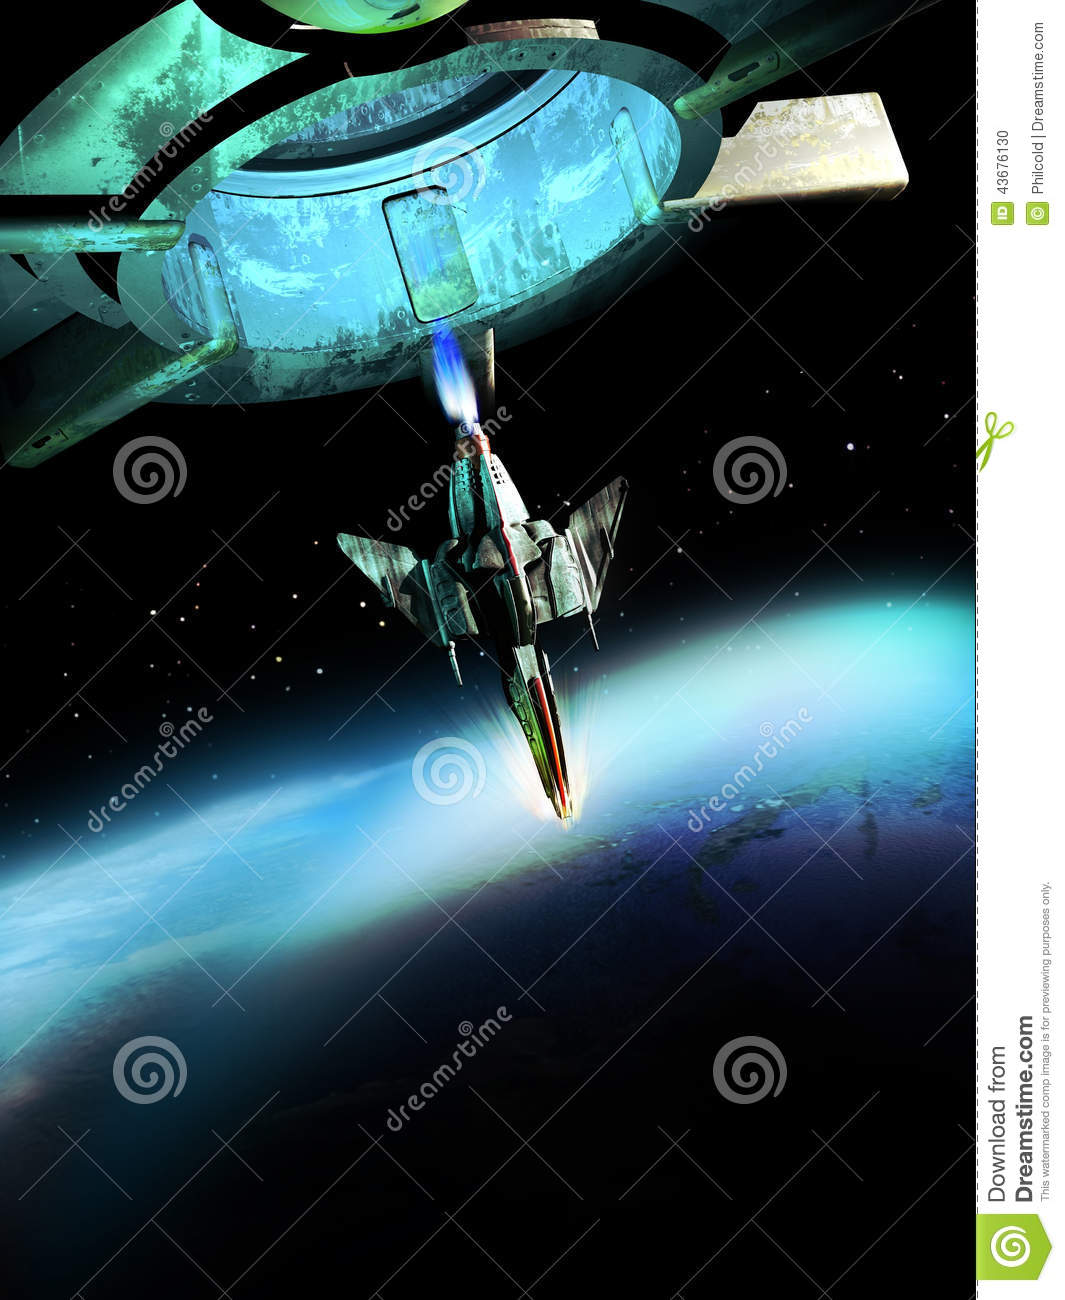 Spaceship and planet stock illustration image 43676130 for 11975 sunshine terrace